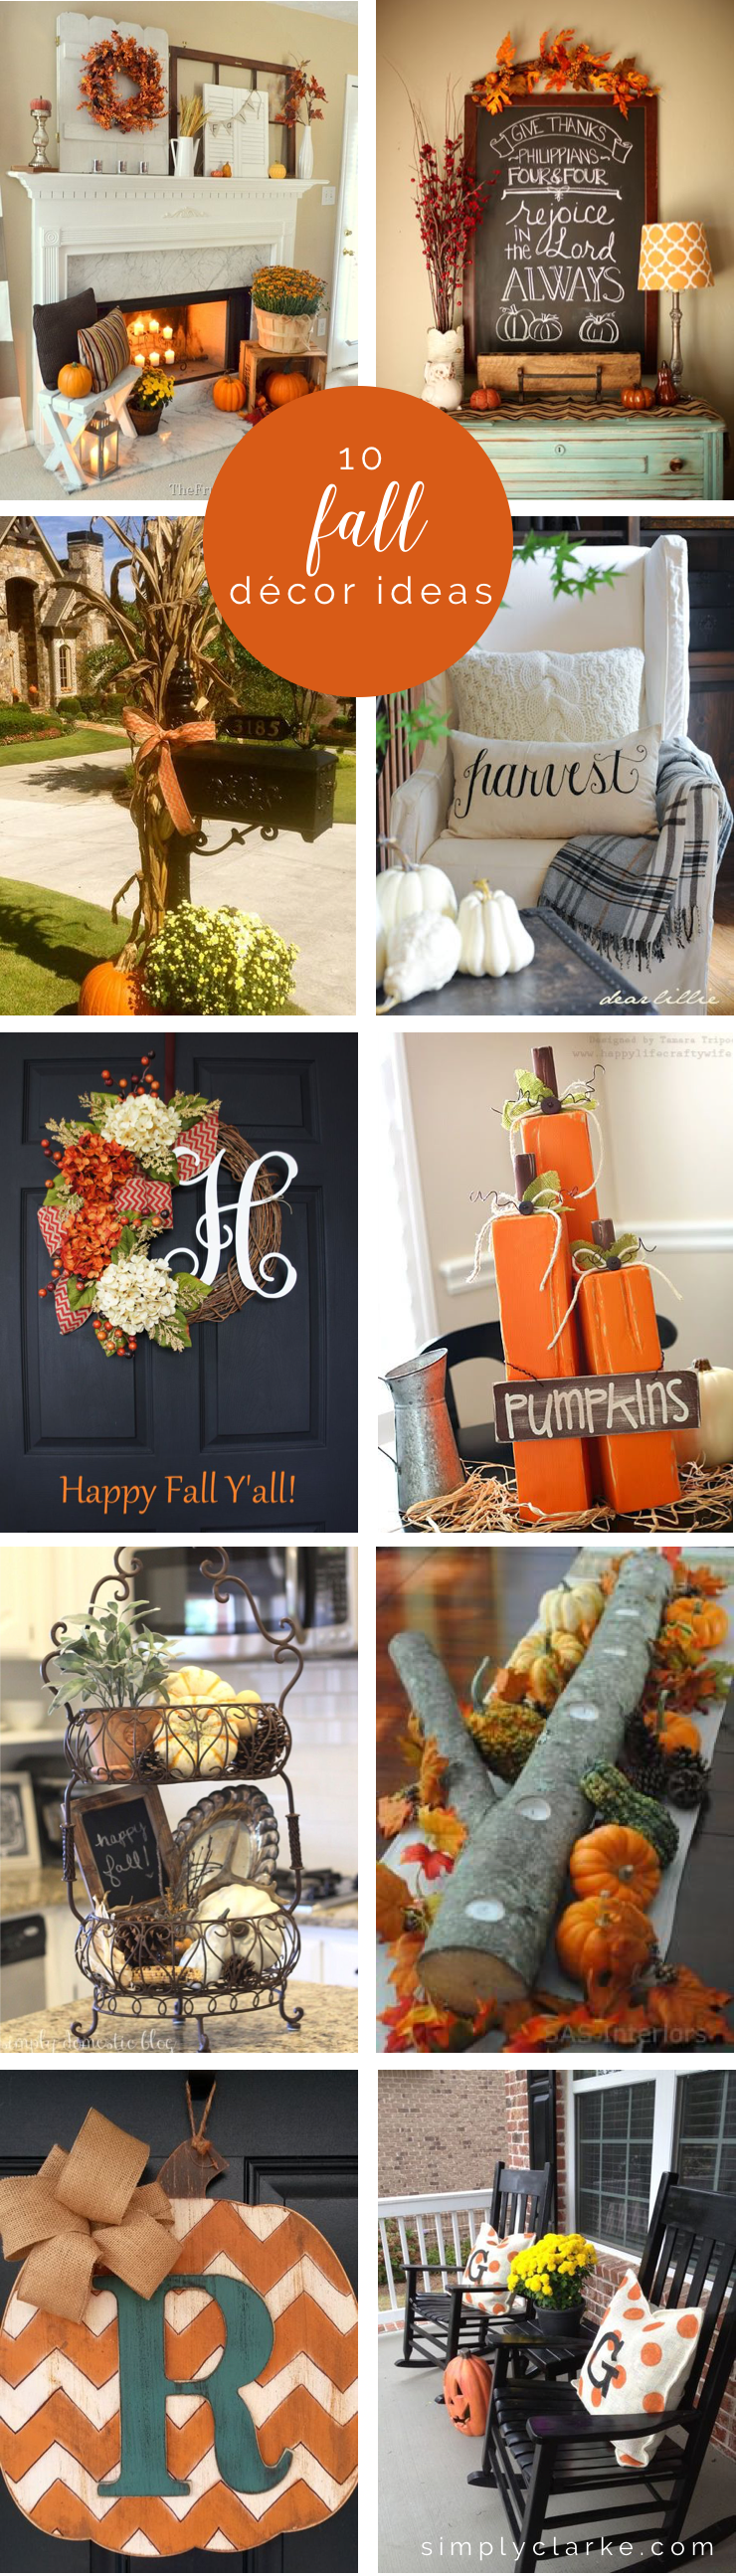 10 Fall Decor Ideas - Simply Clarke